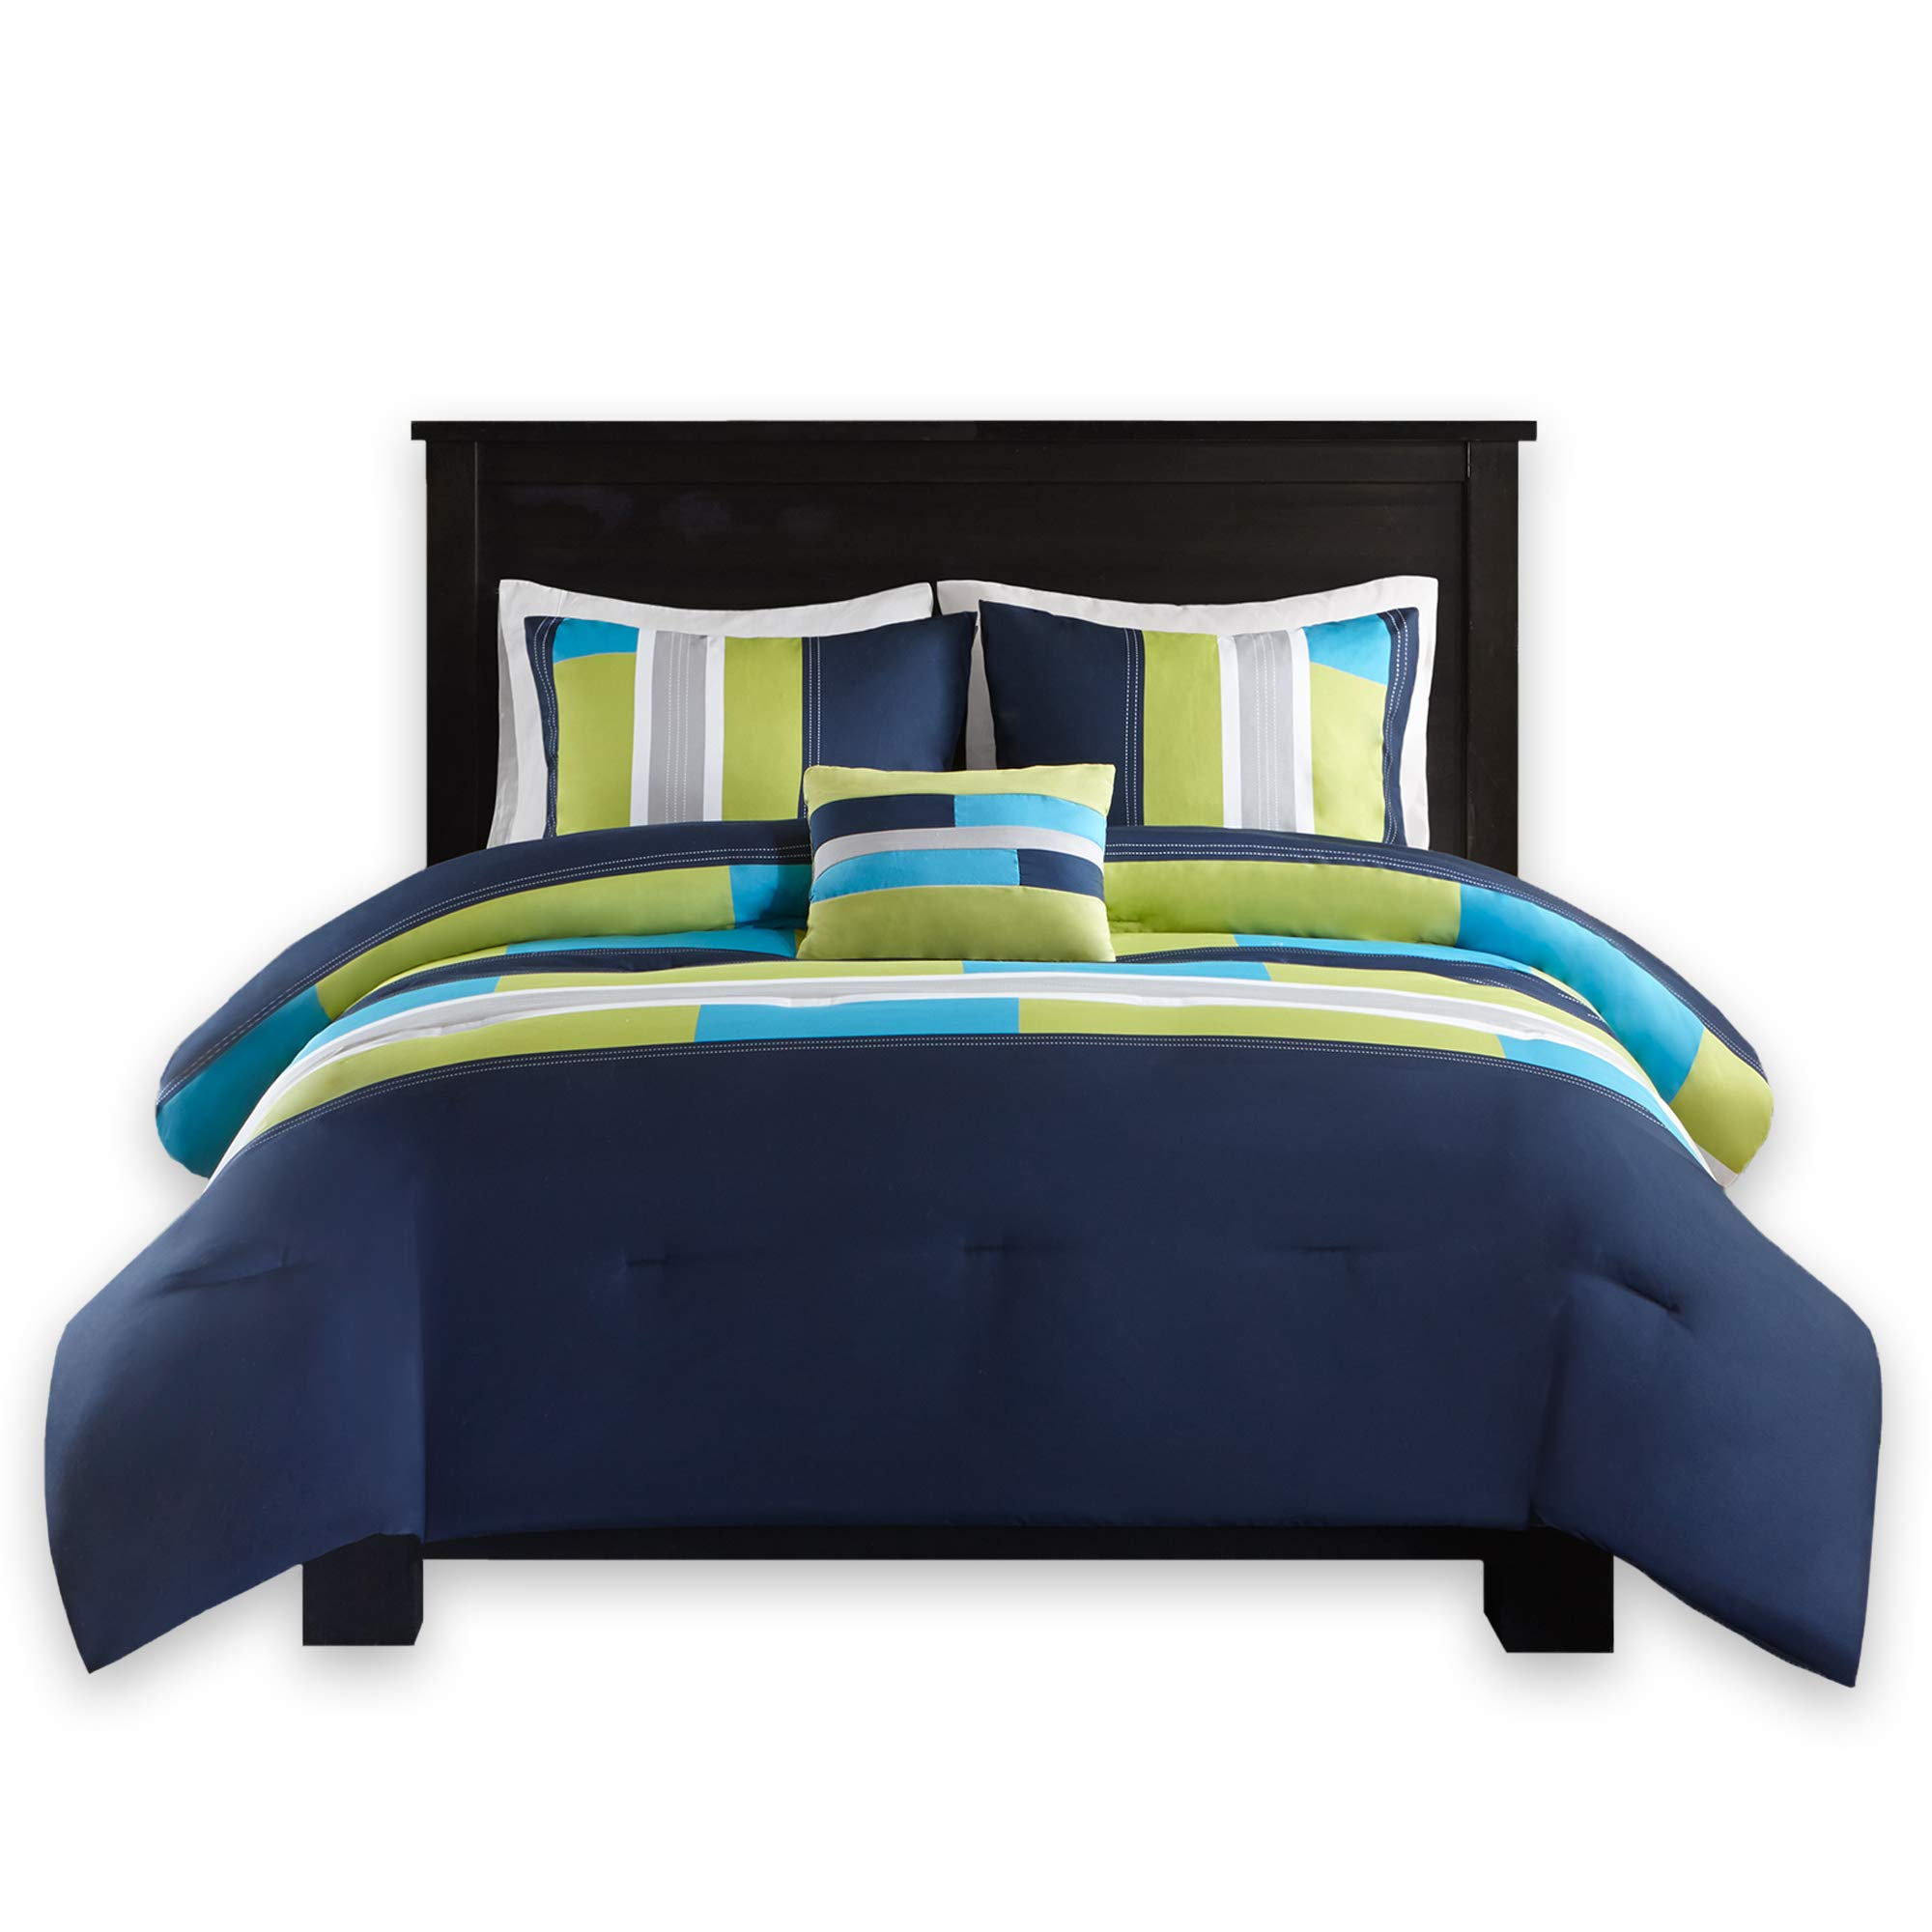 Comfort Spaces - Pierre Comforter Set - 3 Piece - Dark Blue/Navy - Multi-Color Pipeline Panels - Perfect for Dormitory - Boys - Twin/Twin XL Size, Includes 1 Comforter, 1 Sham, 1 Decorative Pillow by Comfort Spaces